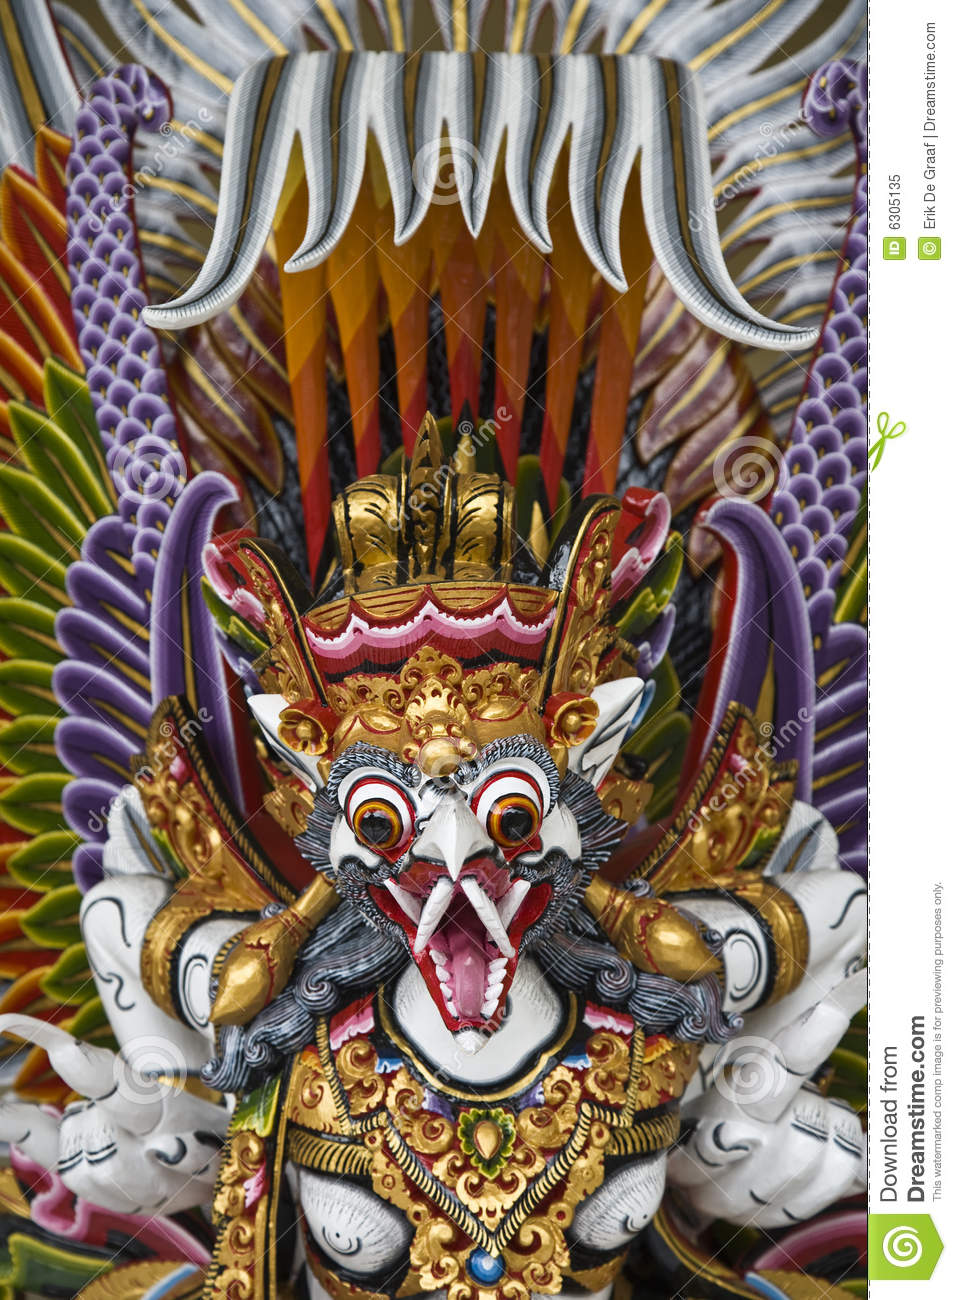 Garuda, in Bali to be believed the king of birds.